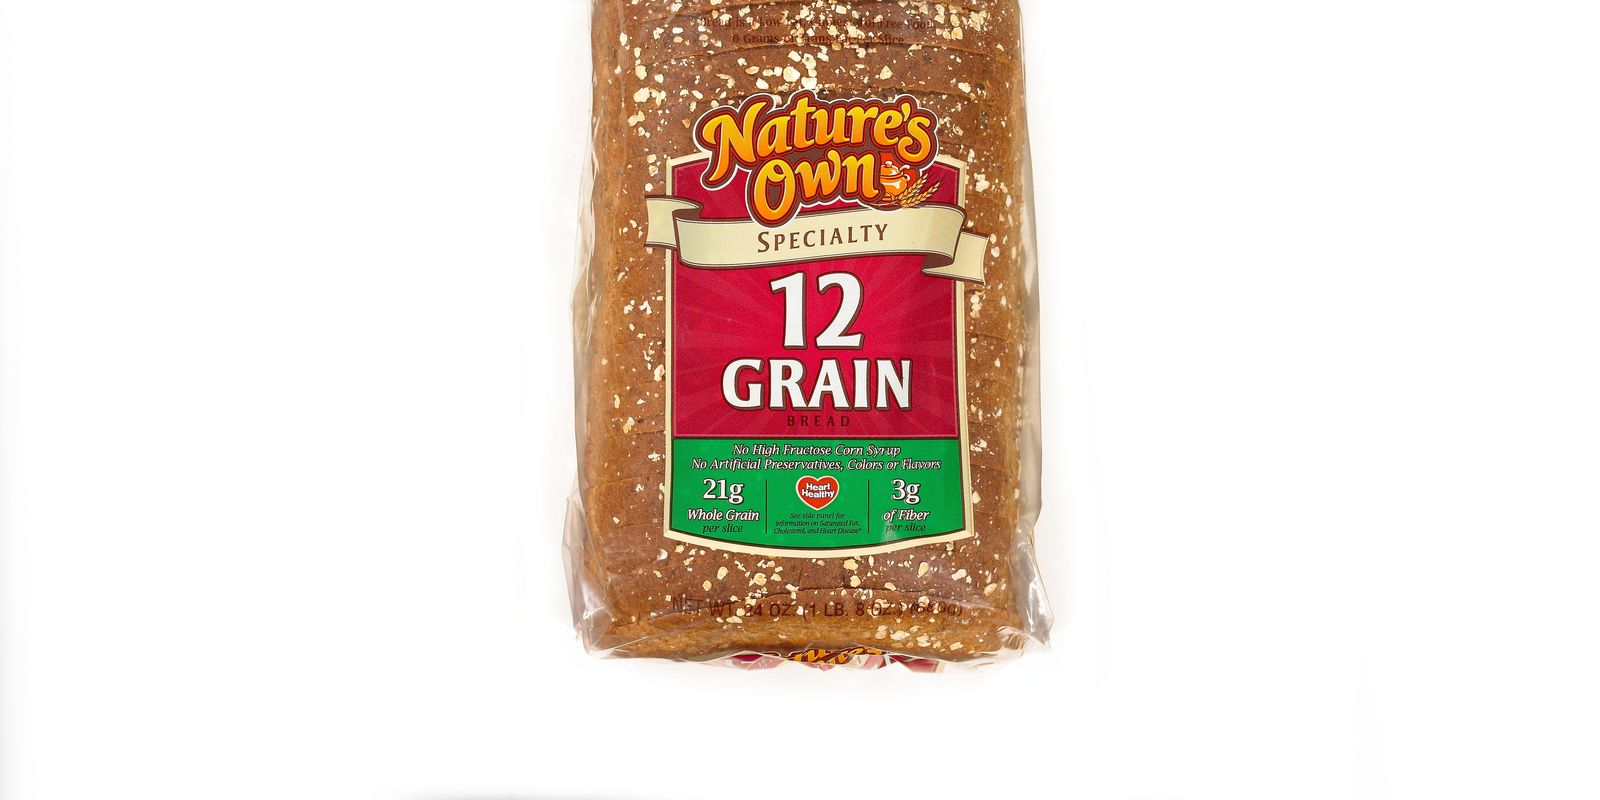 Nature's own whole wheat bread coupons